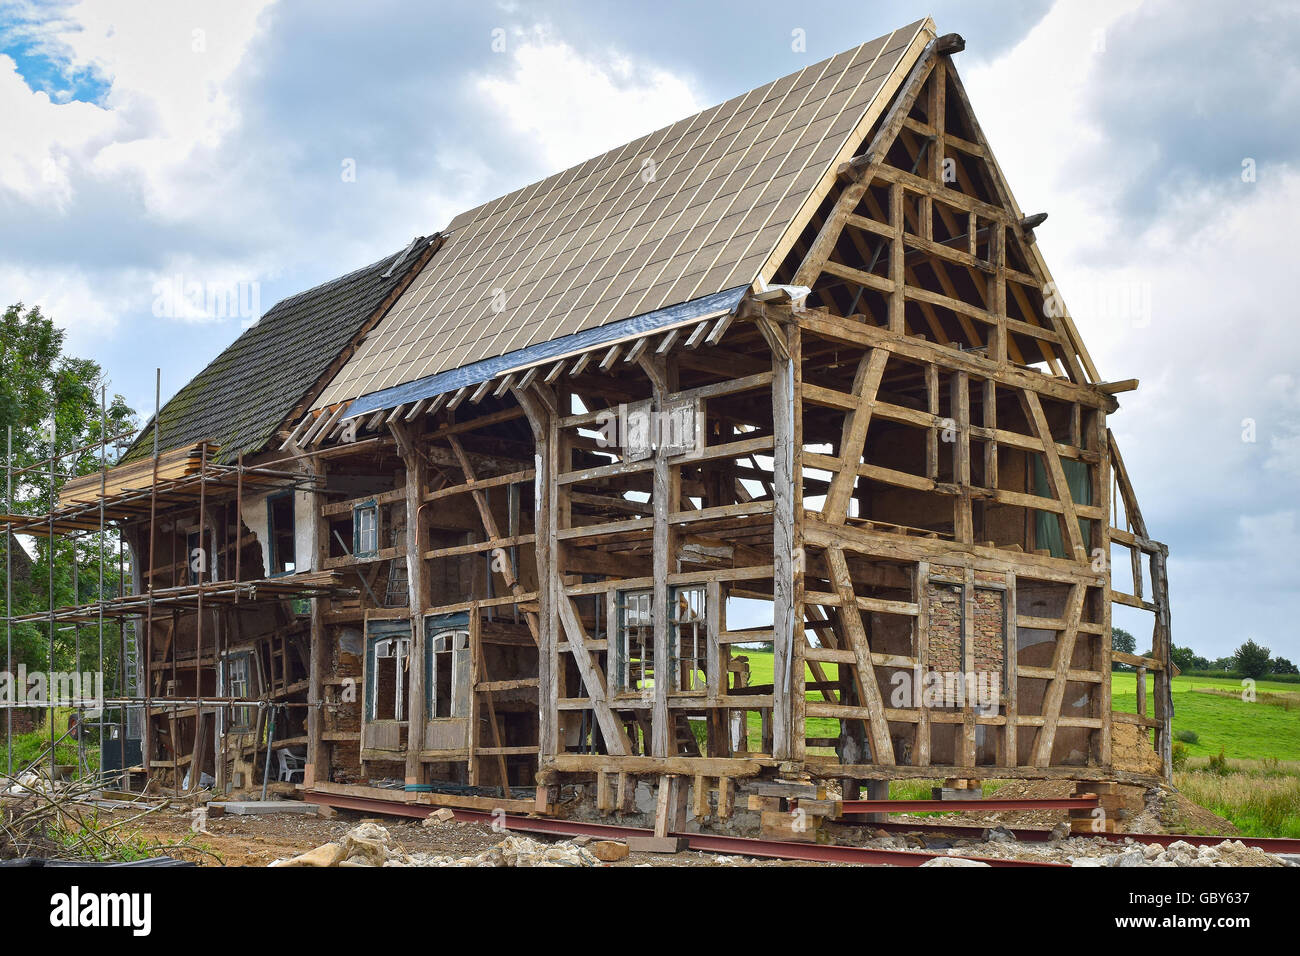 House Reconstruction timber frame of a half-timbered house under reconstruction stock